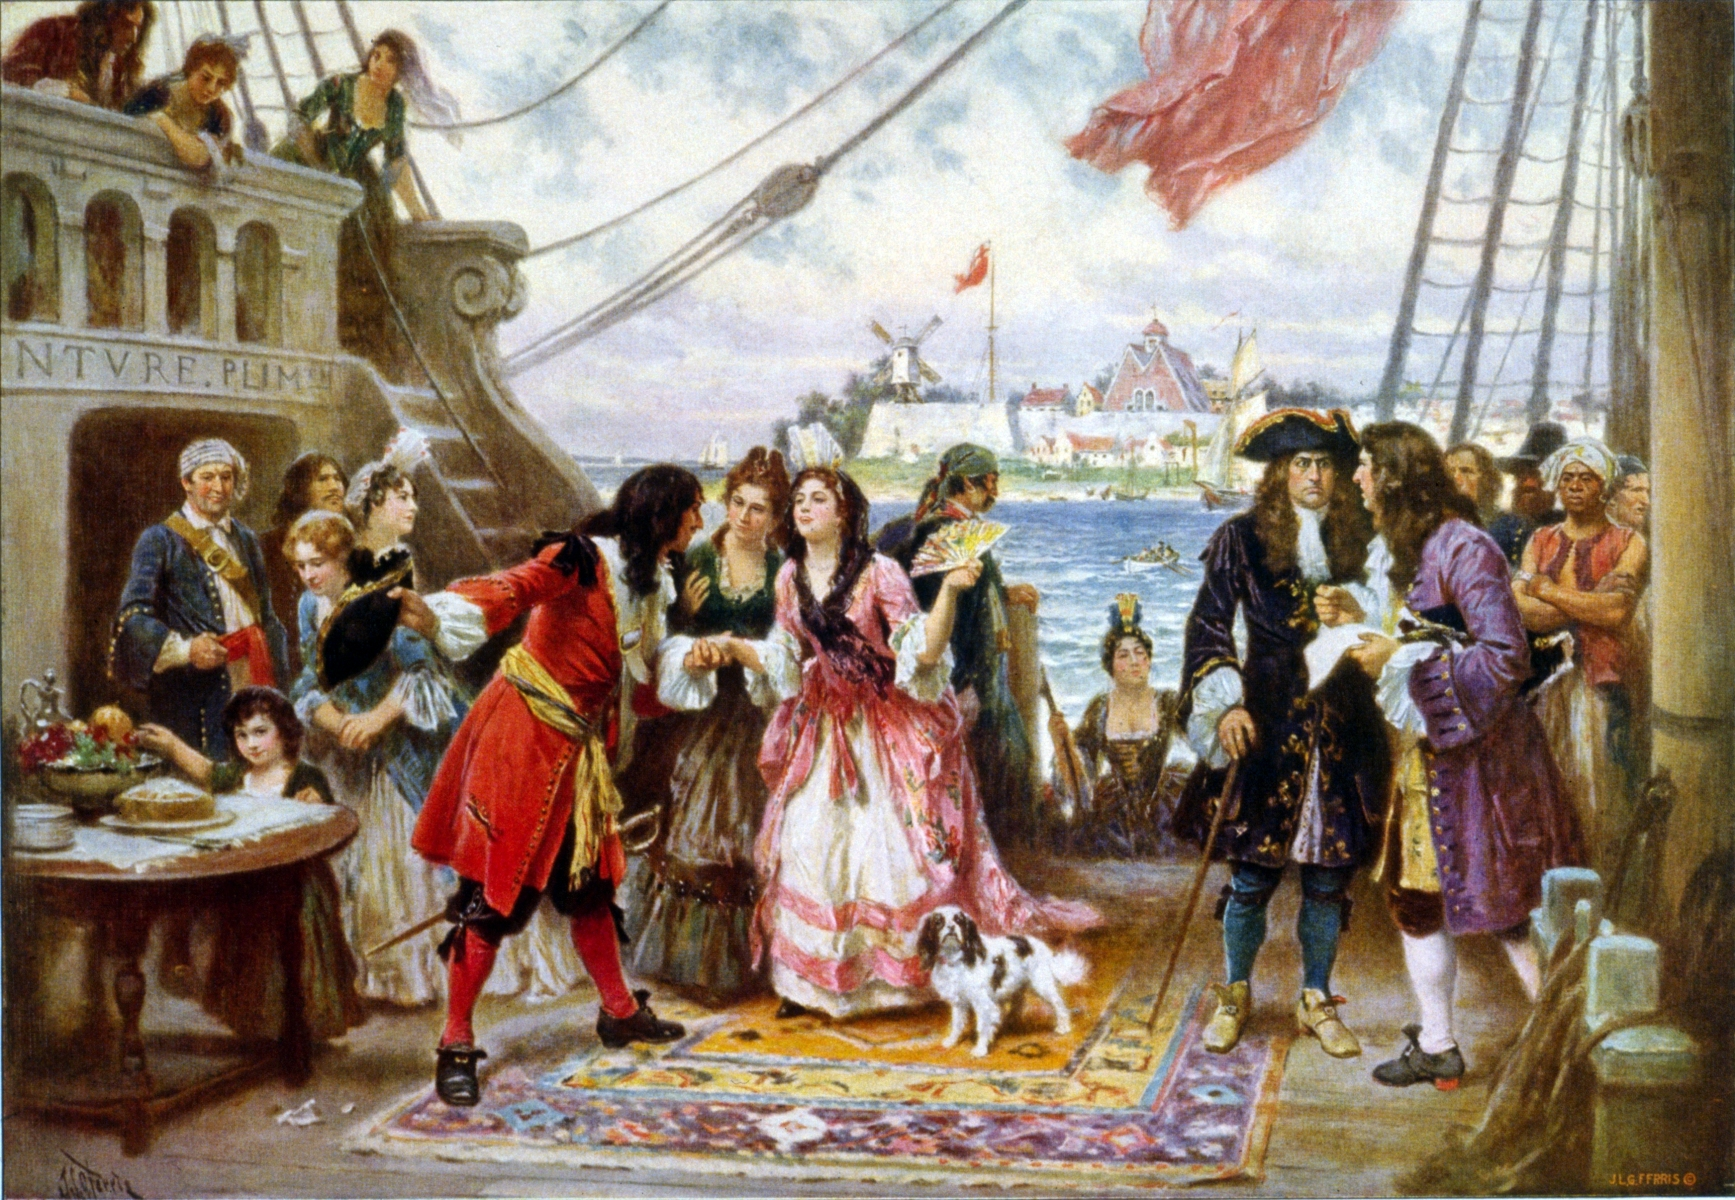 Captain Kidd in New York Harbor, in a c. 1920 painting by Jean Leon Gerome Ferris